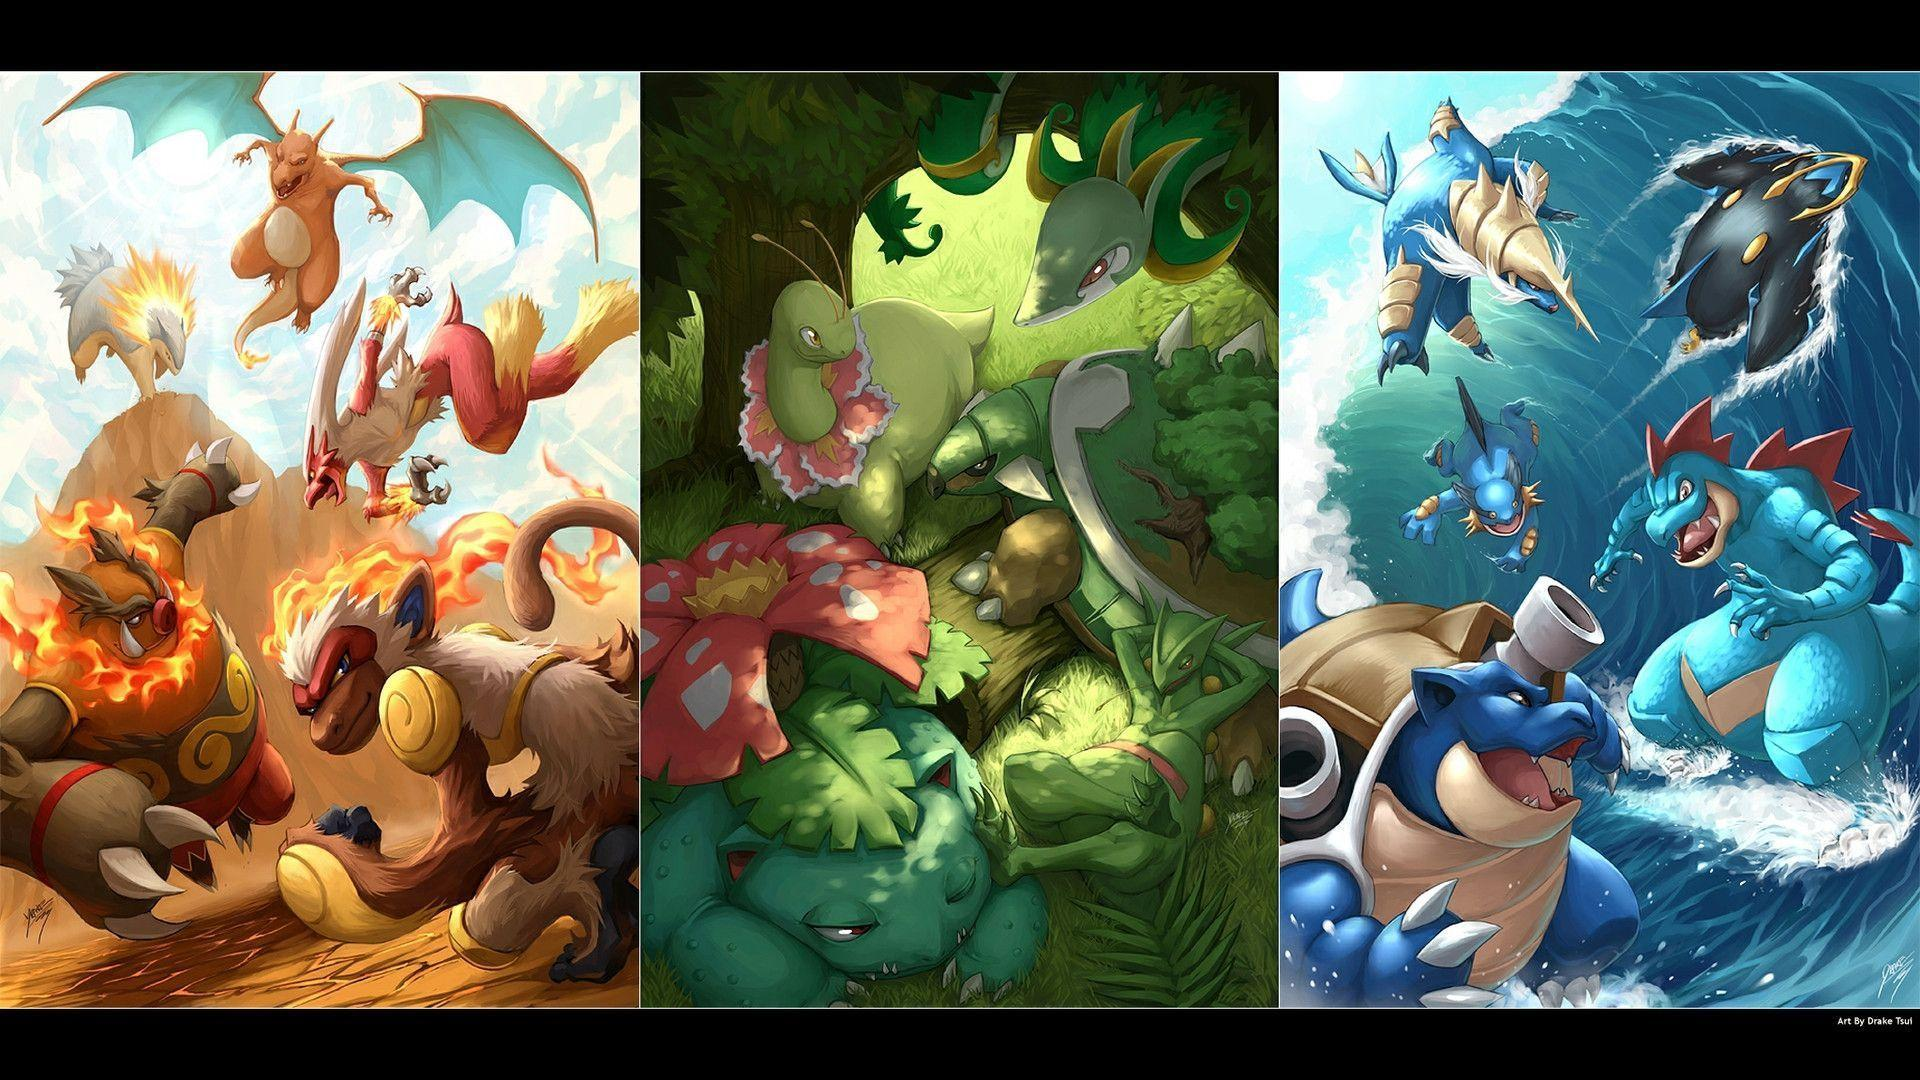 Download Pokemon Starters Wallpaper 1920x1080 | Full HD Wallpapers